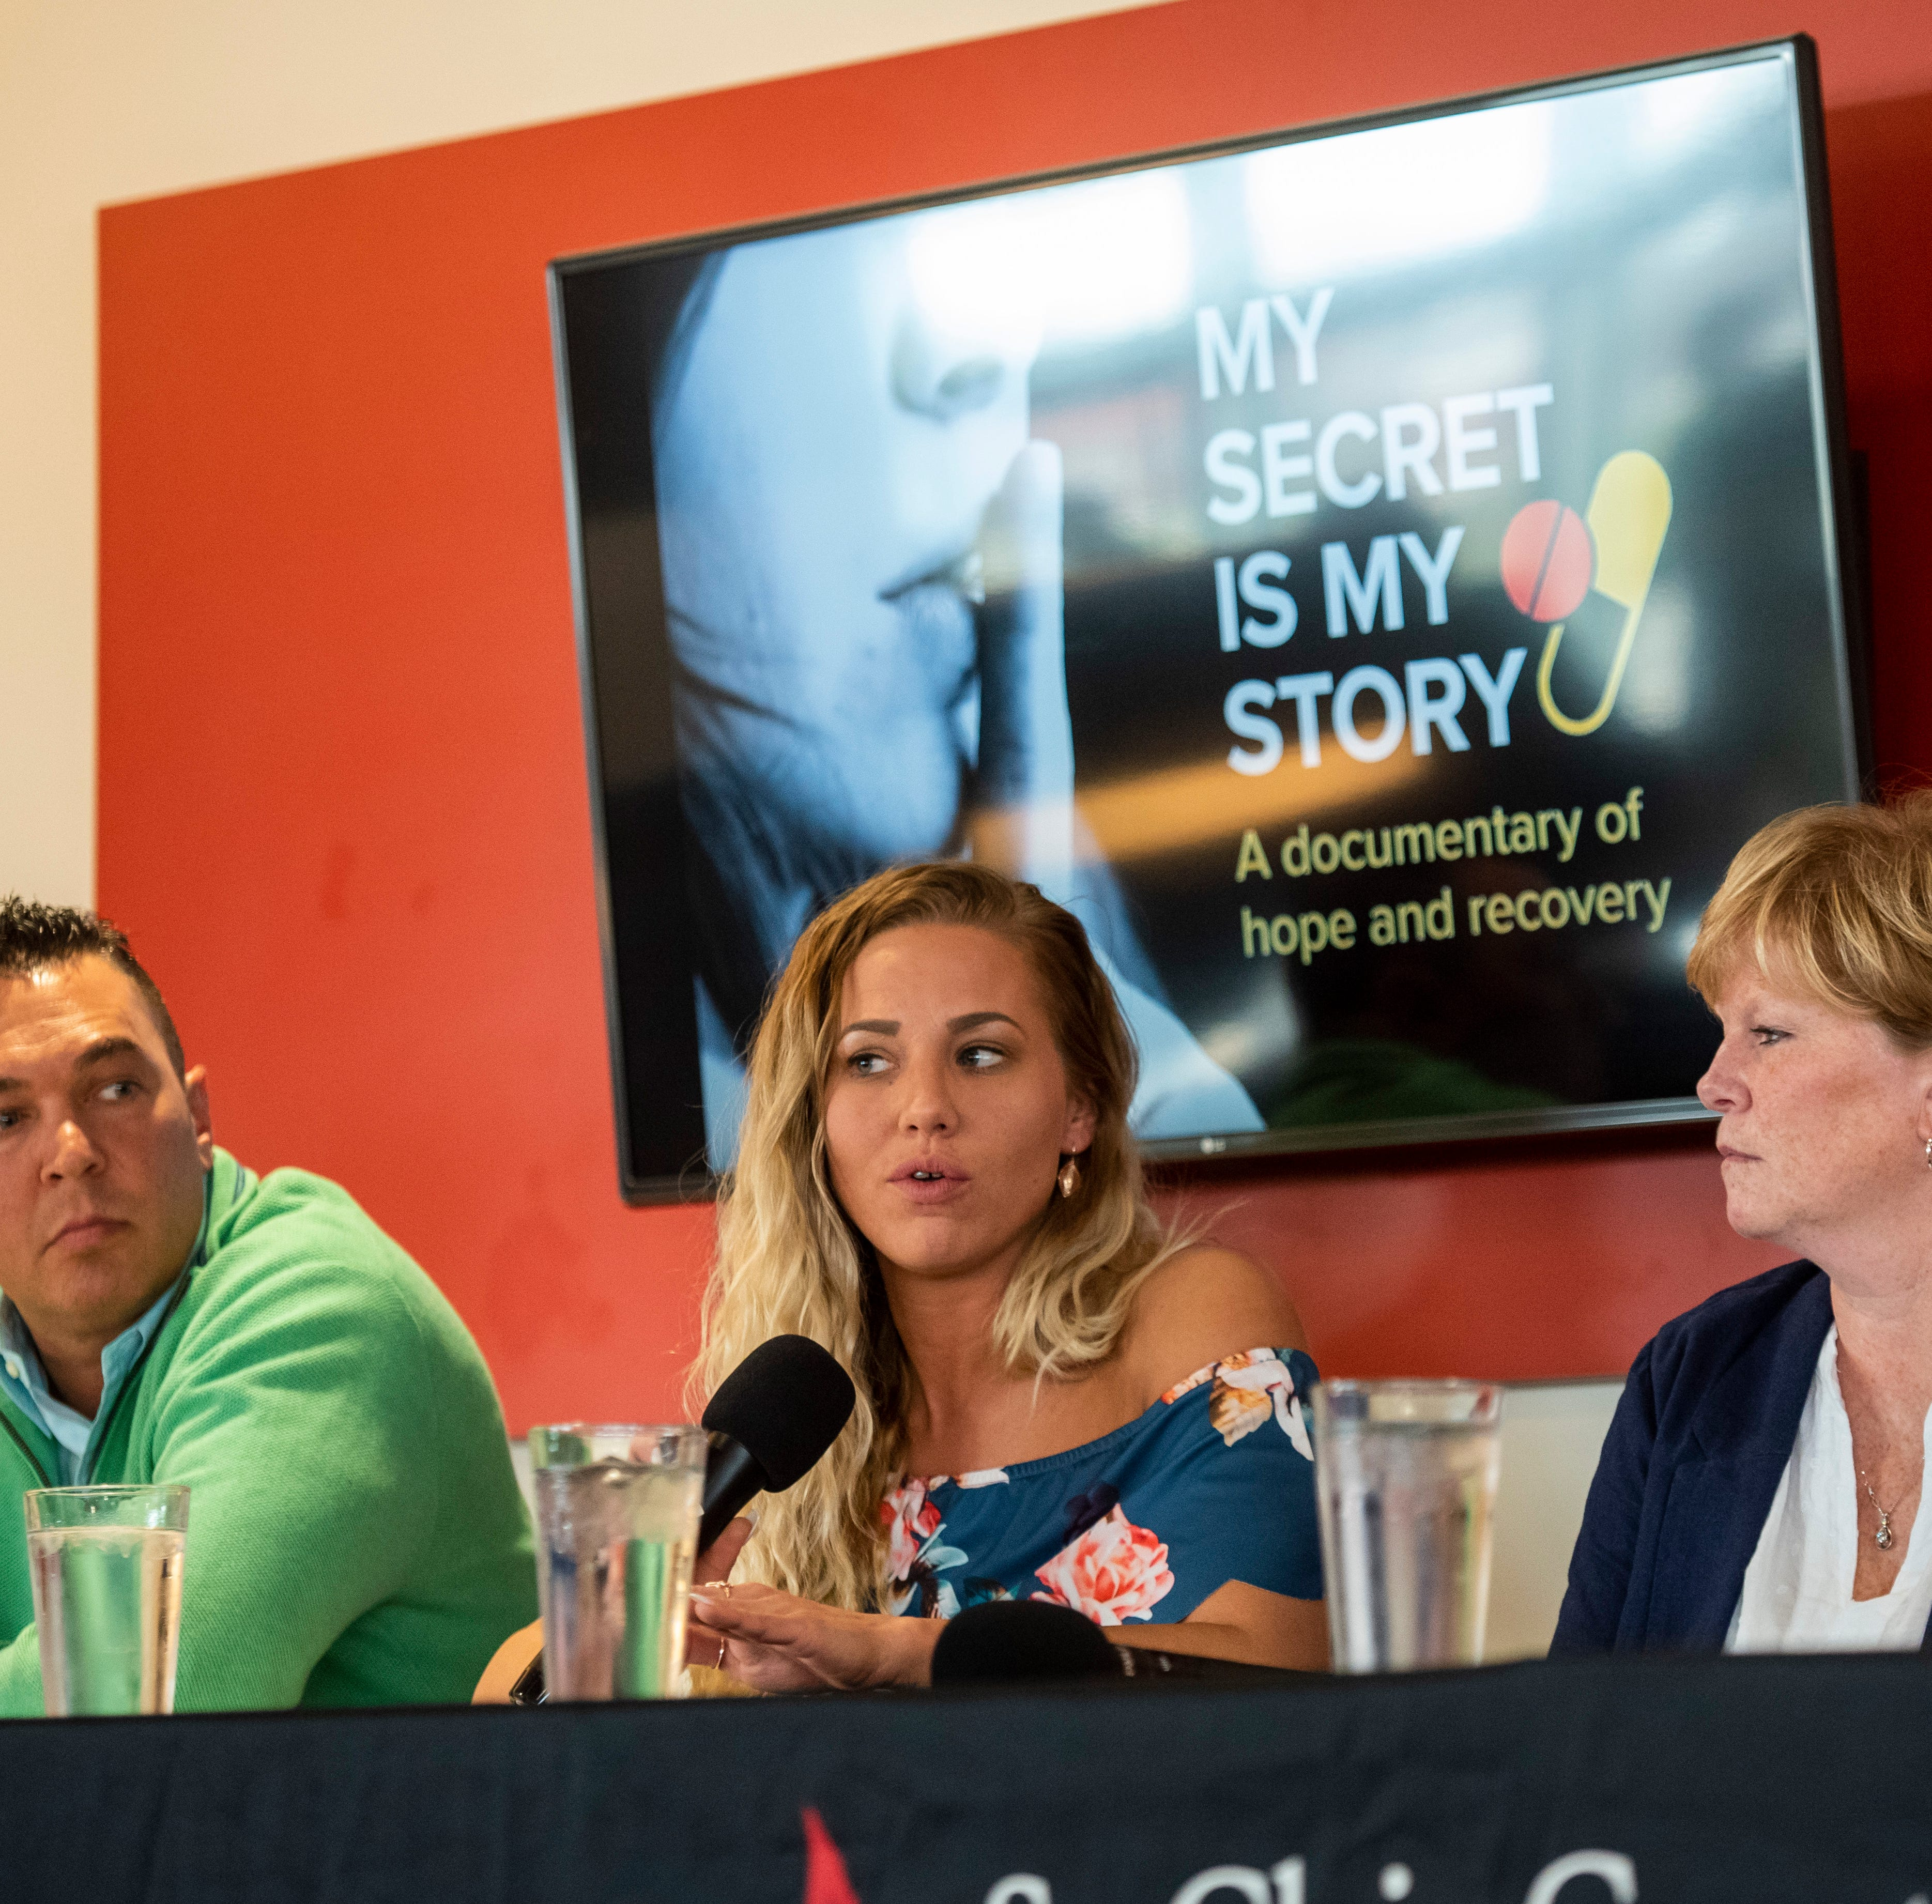 Addiction recovery documentary premiers at Sperry's